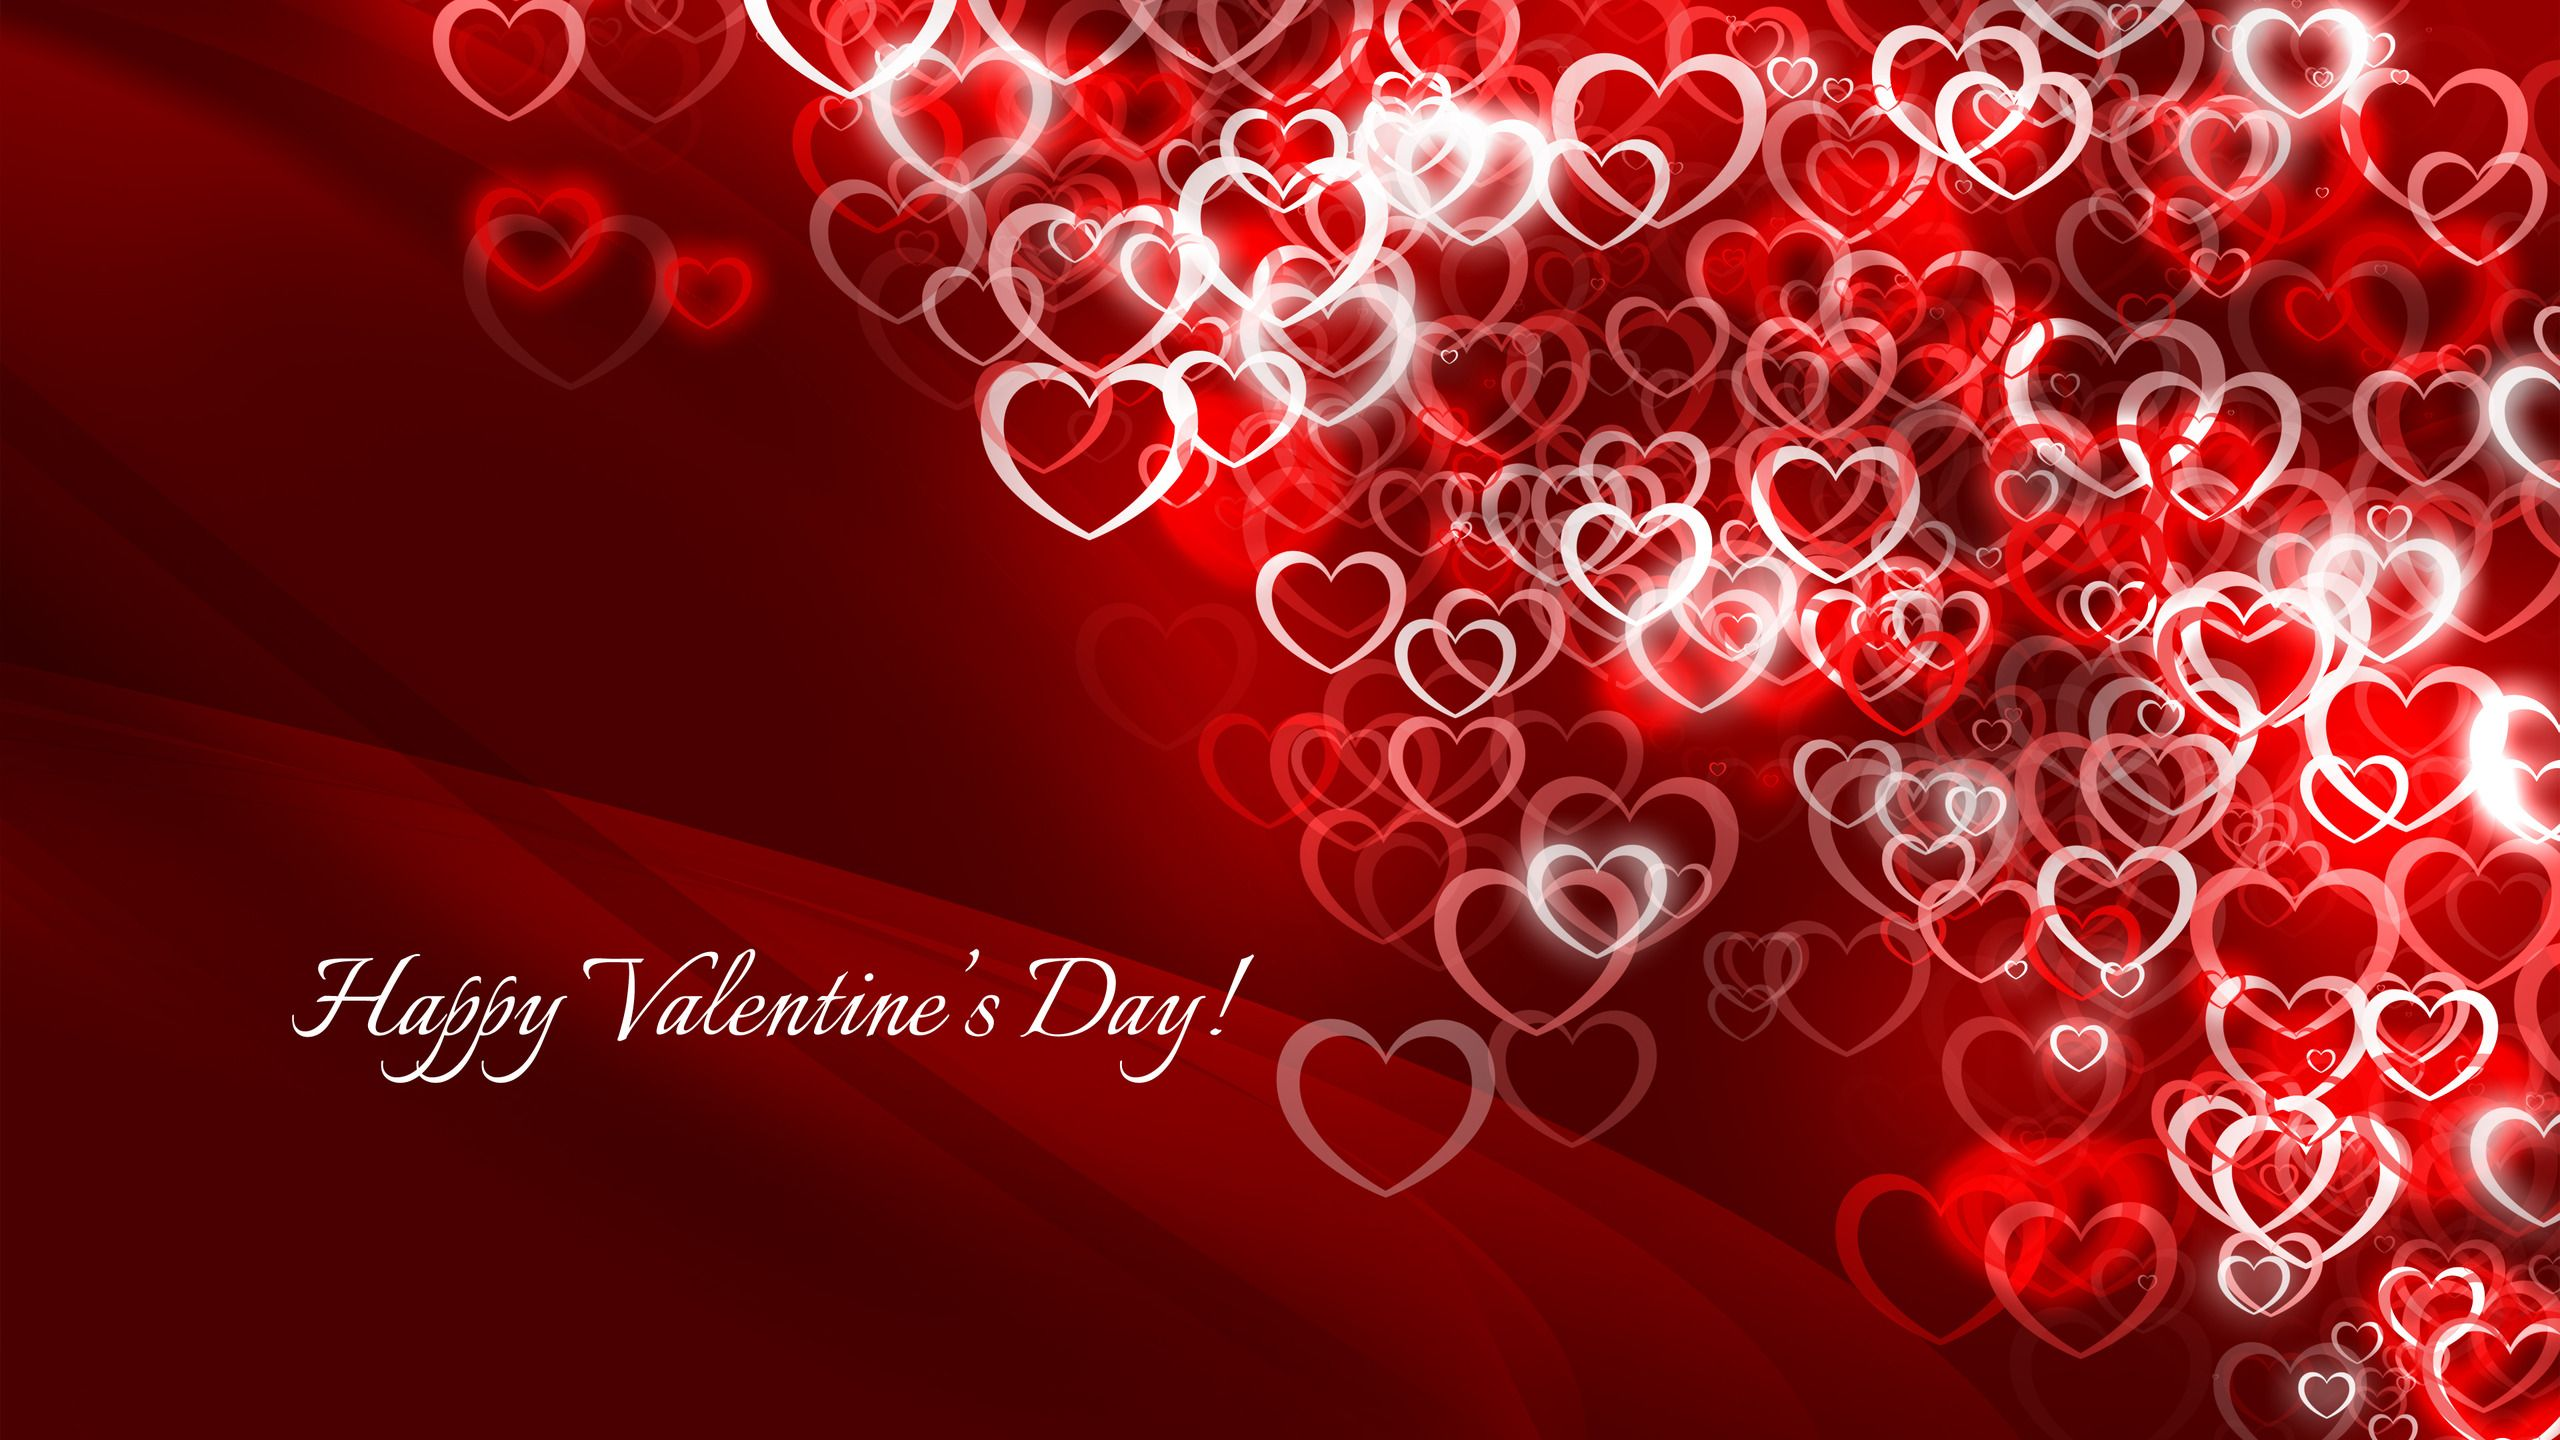 Happy Valentines Day Messages 2018 Cake Pinterest